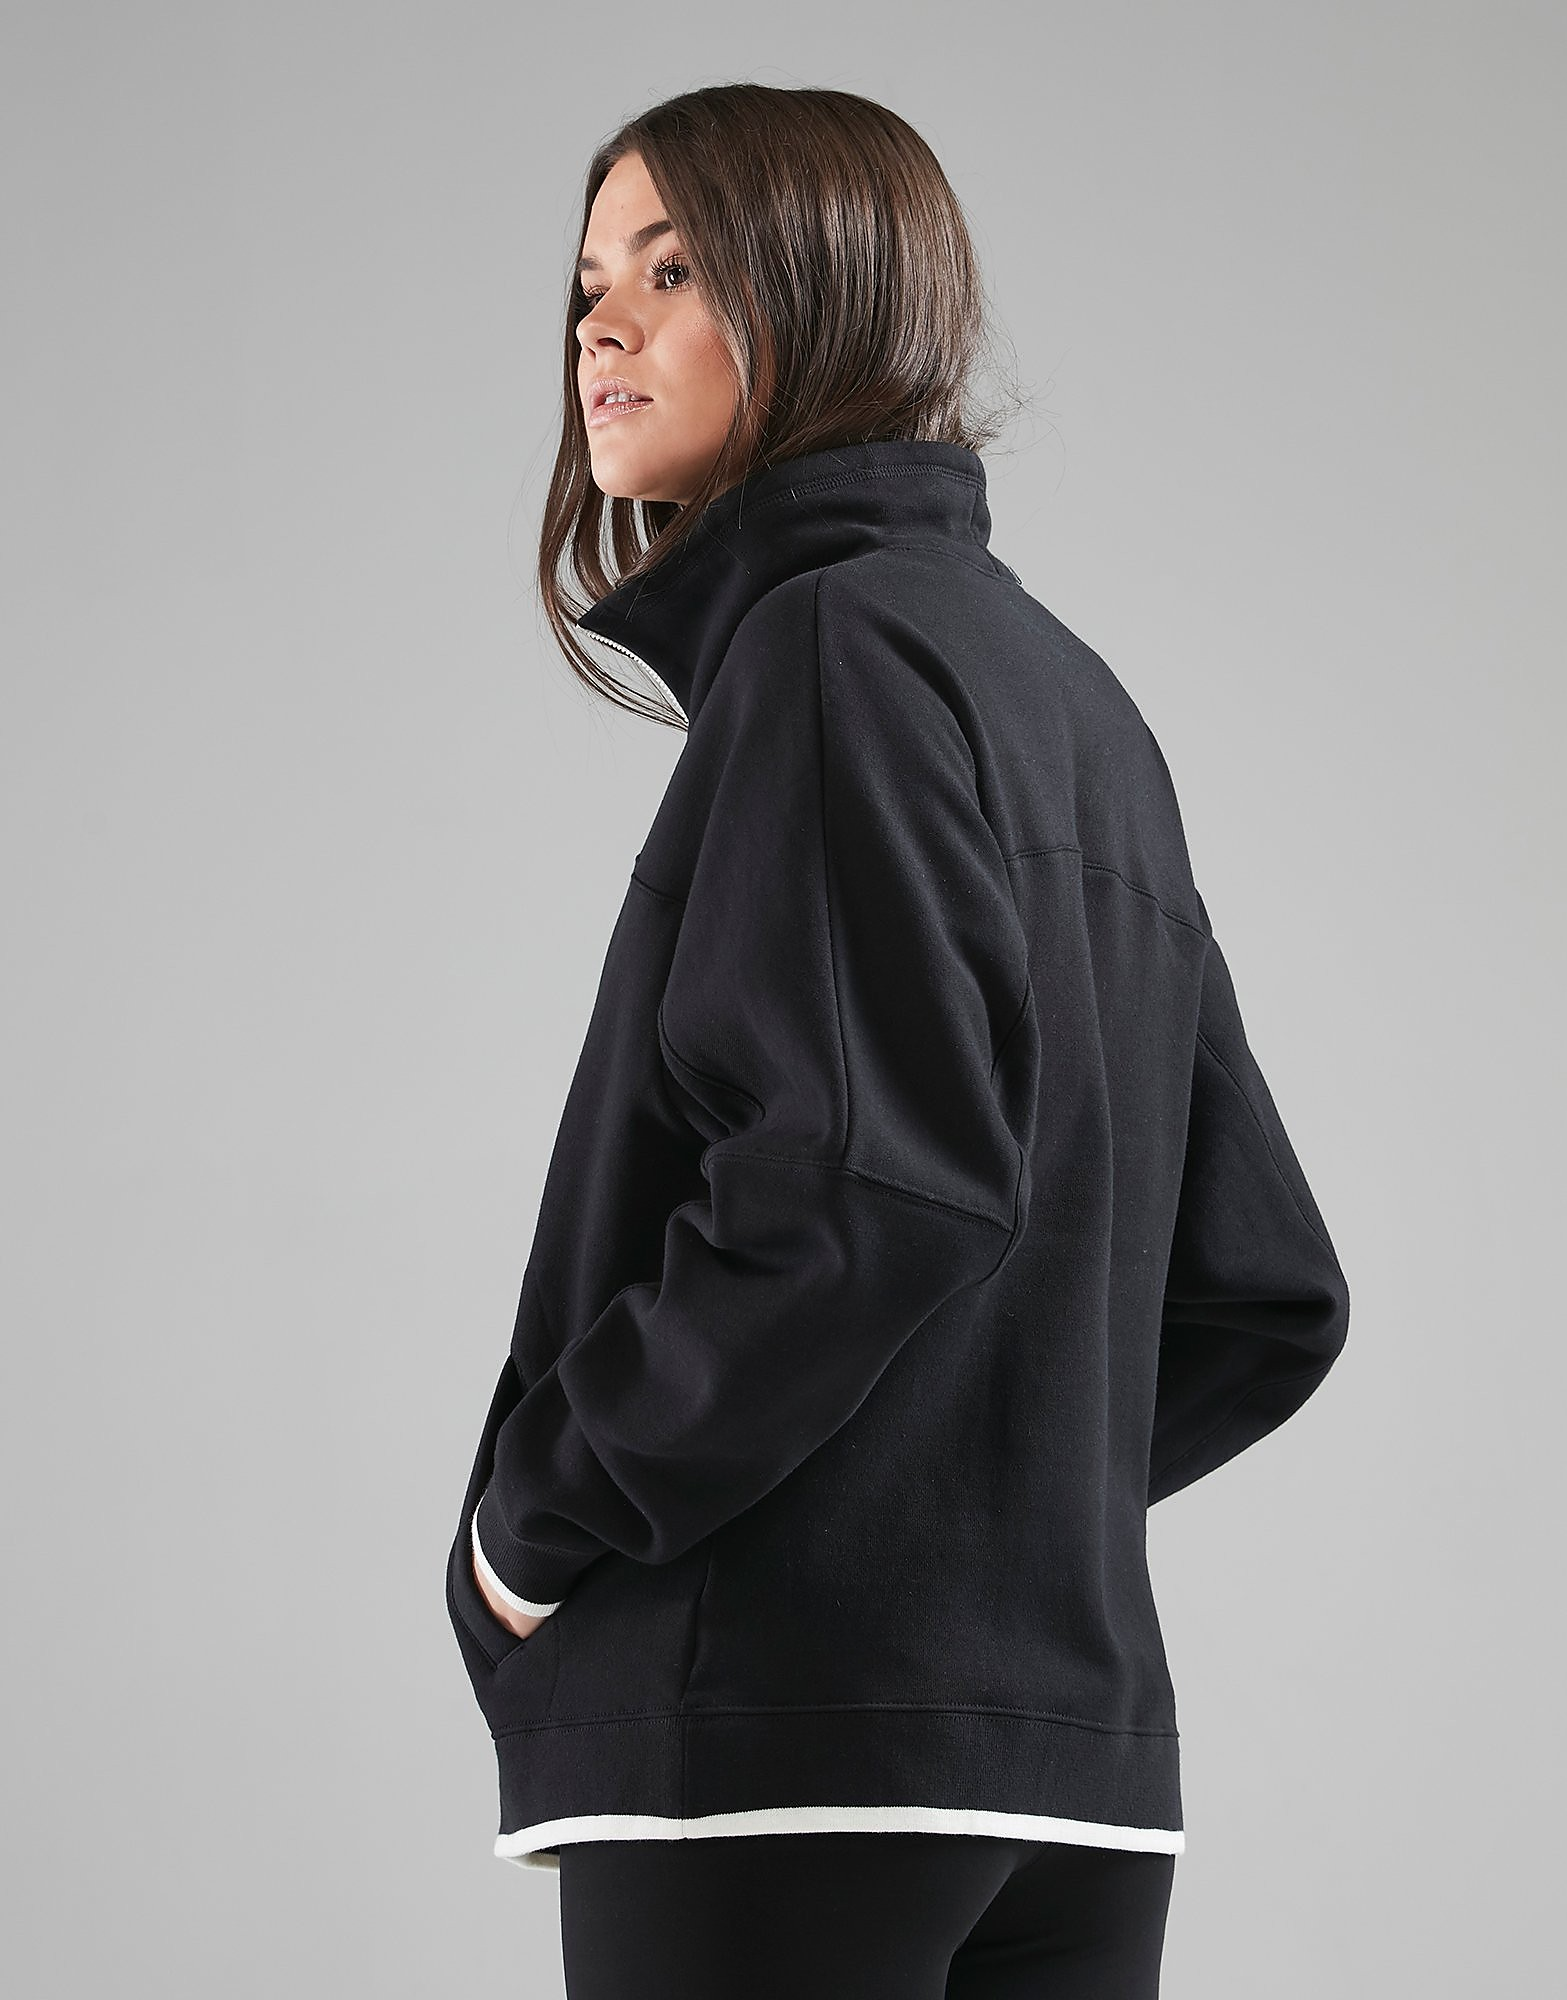 Nike Archive Half Zip Track Top